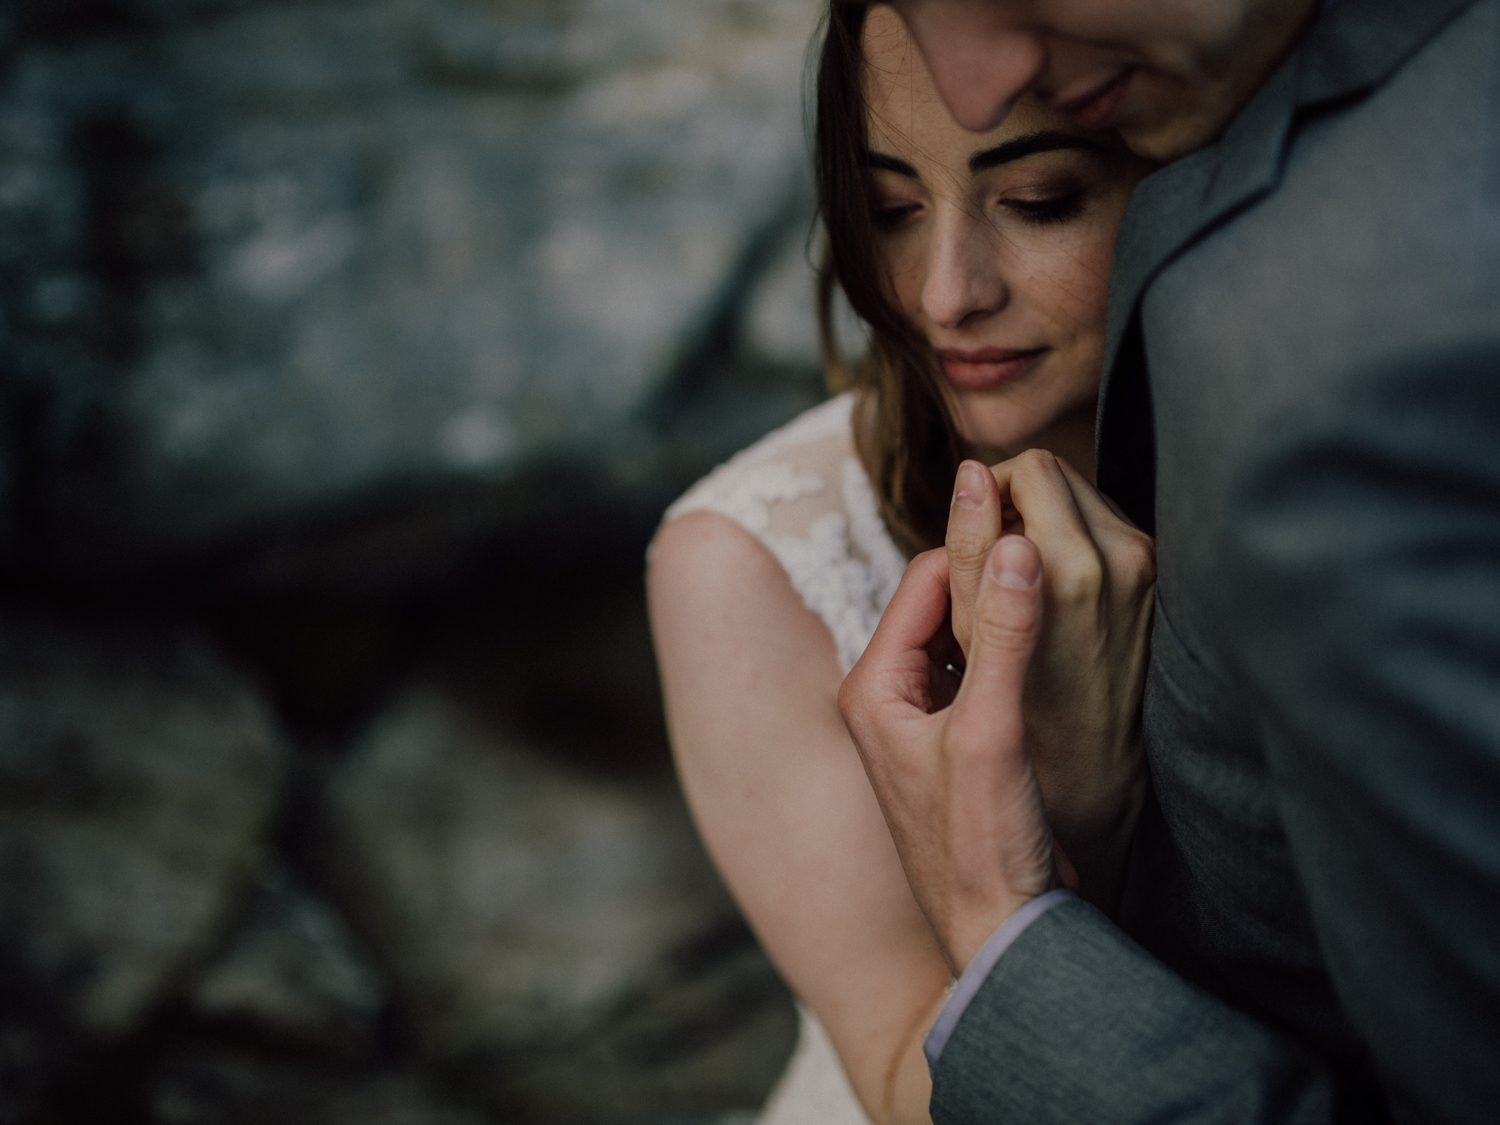 capyture-wedding-photographer-destination-elopement-isle-skye-scotland-423